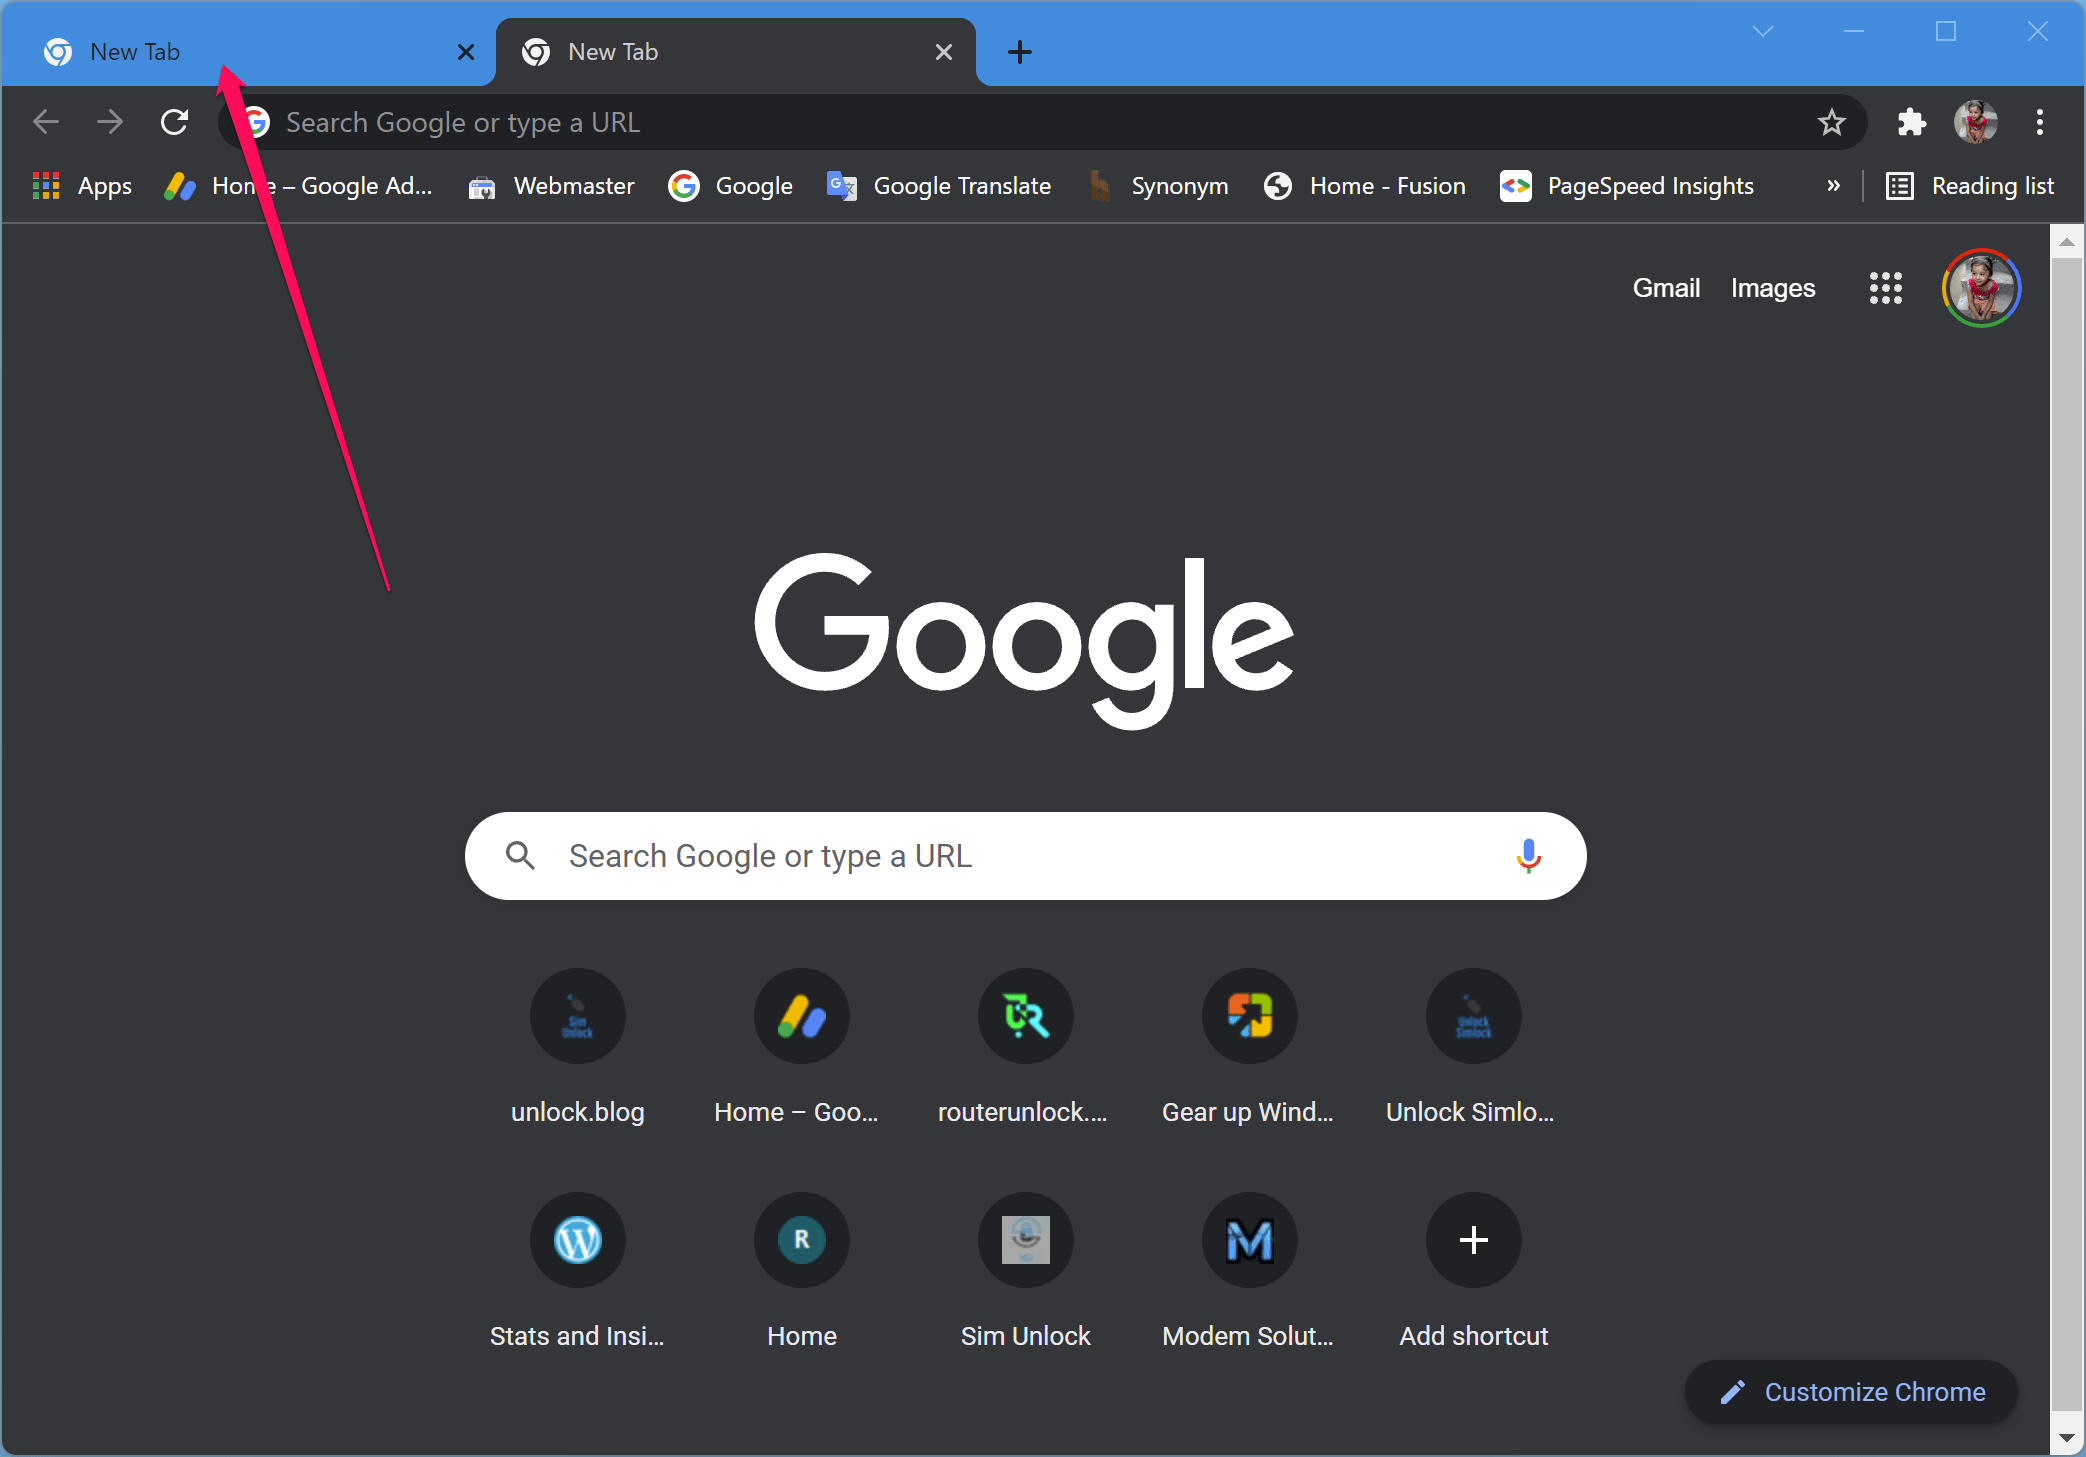 How to Show Color on Title Bars in Windows 11?